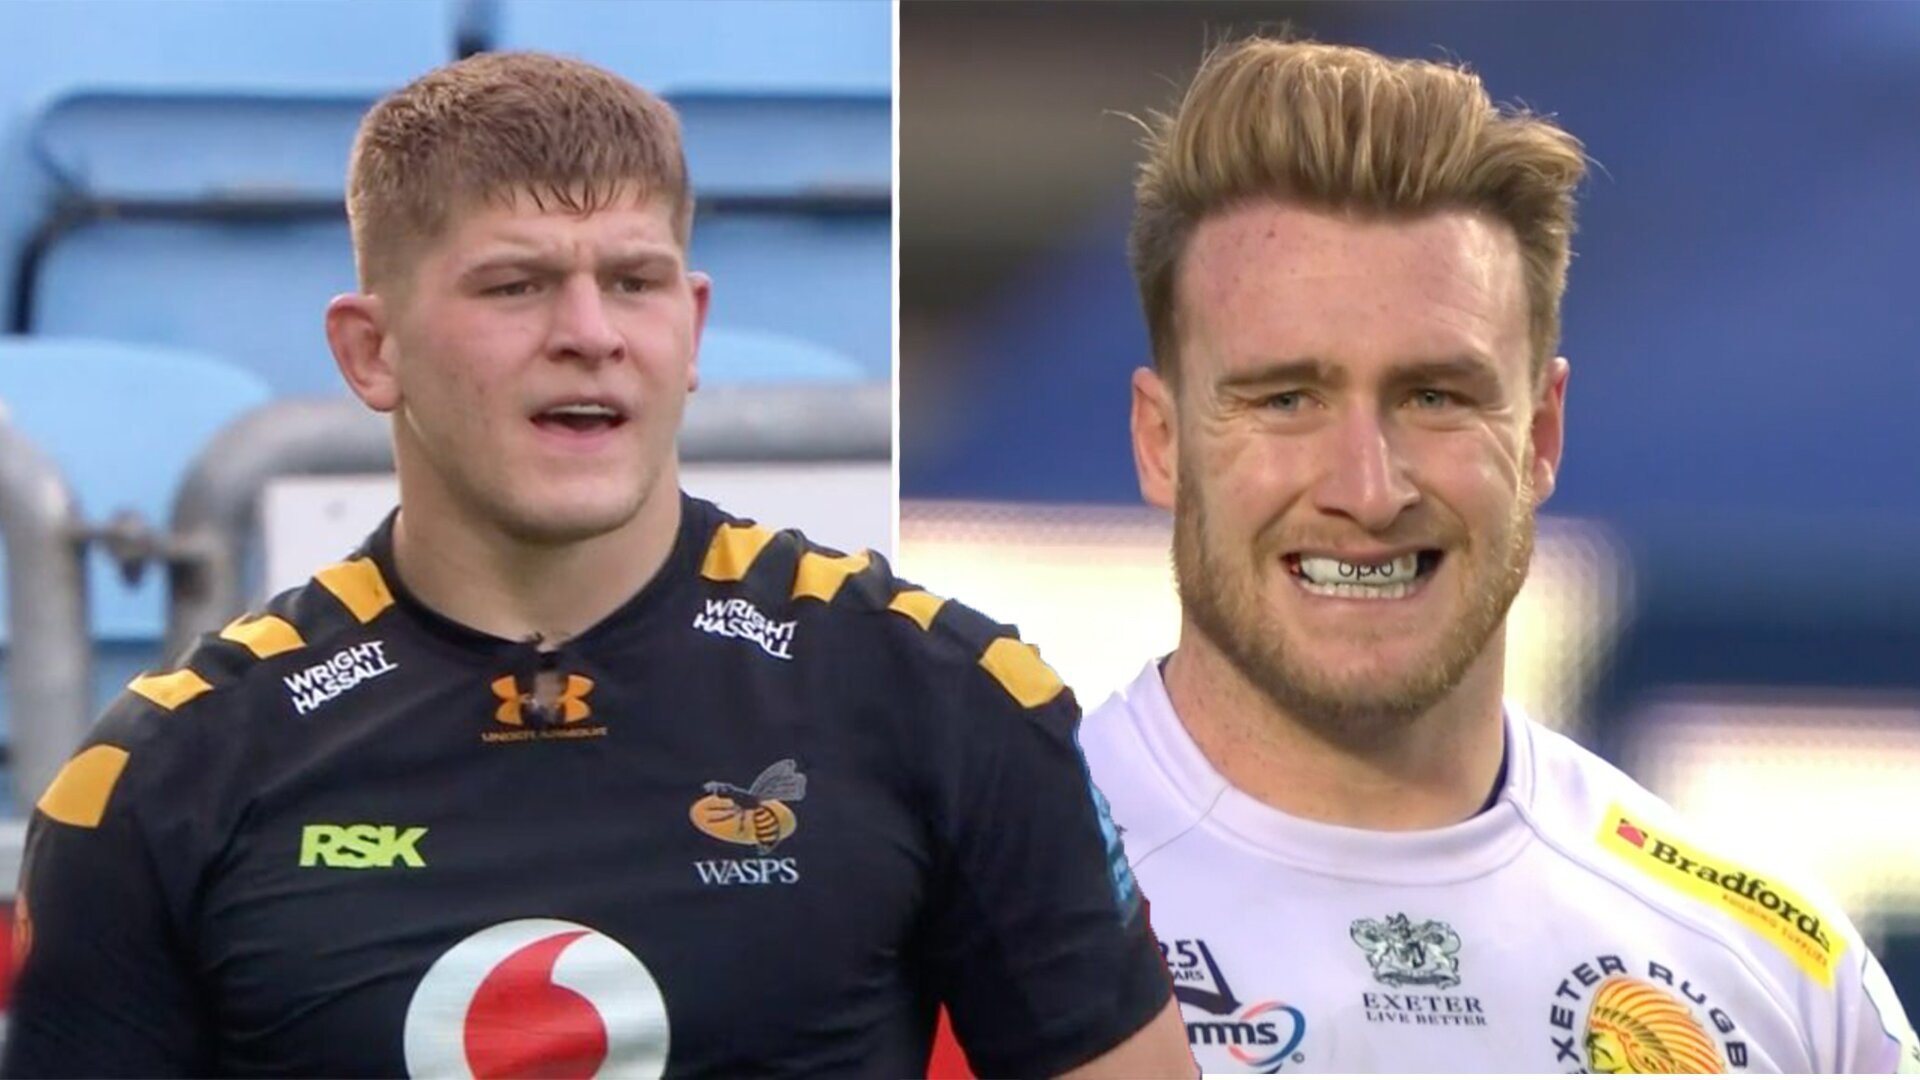 Internet goes into meltdown as it reacts to news that Bristol may replace Wasps in Premiership rugby final